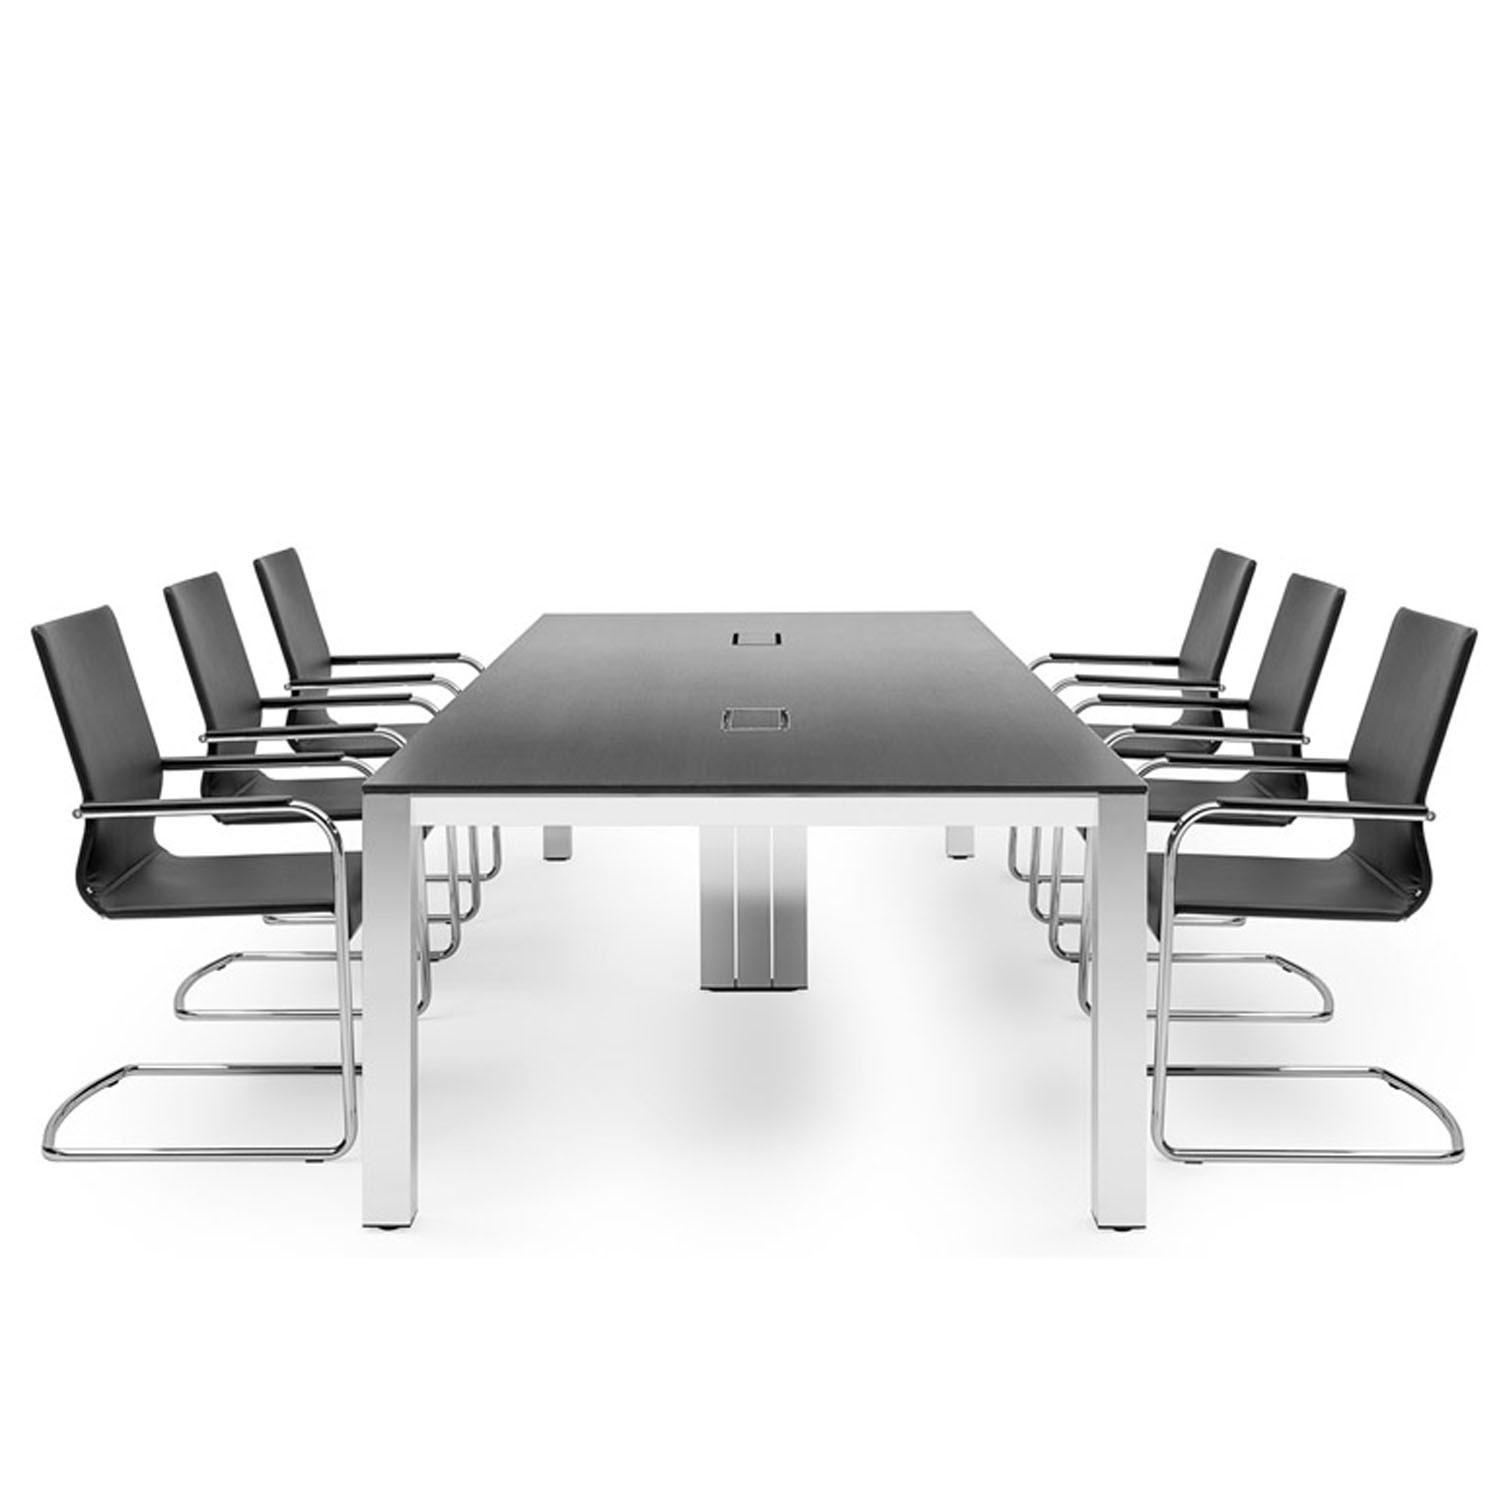 P80 Meeting Tables